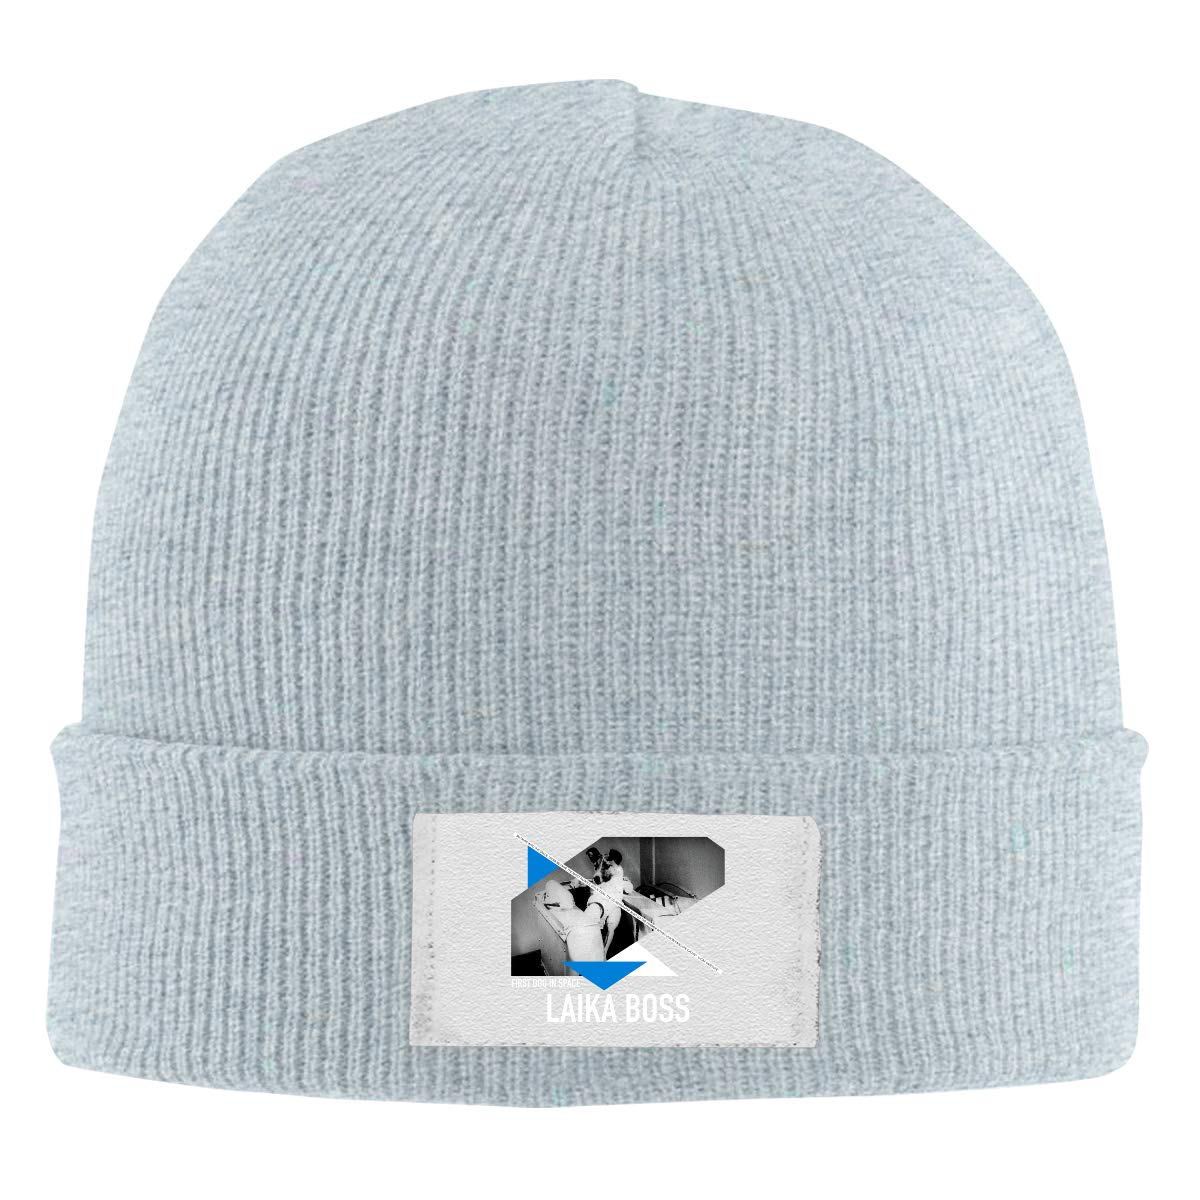 Skull Caps First Dog in Space Laika Boss Astronaut Dogs Winter Warm Knit Hats Stretchy Cuff Beanie Hat Black